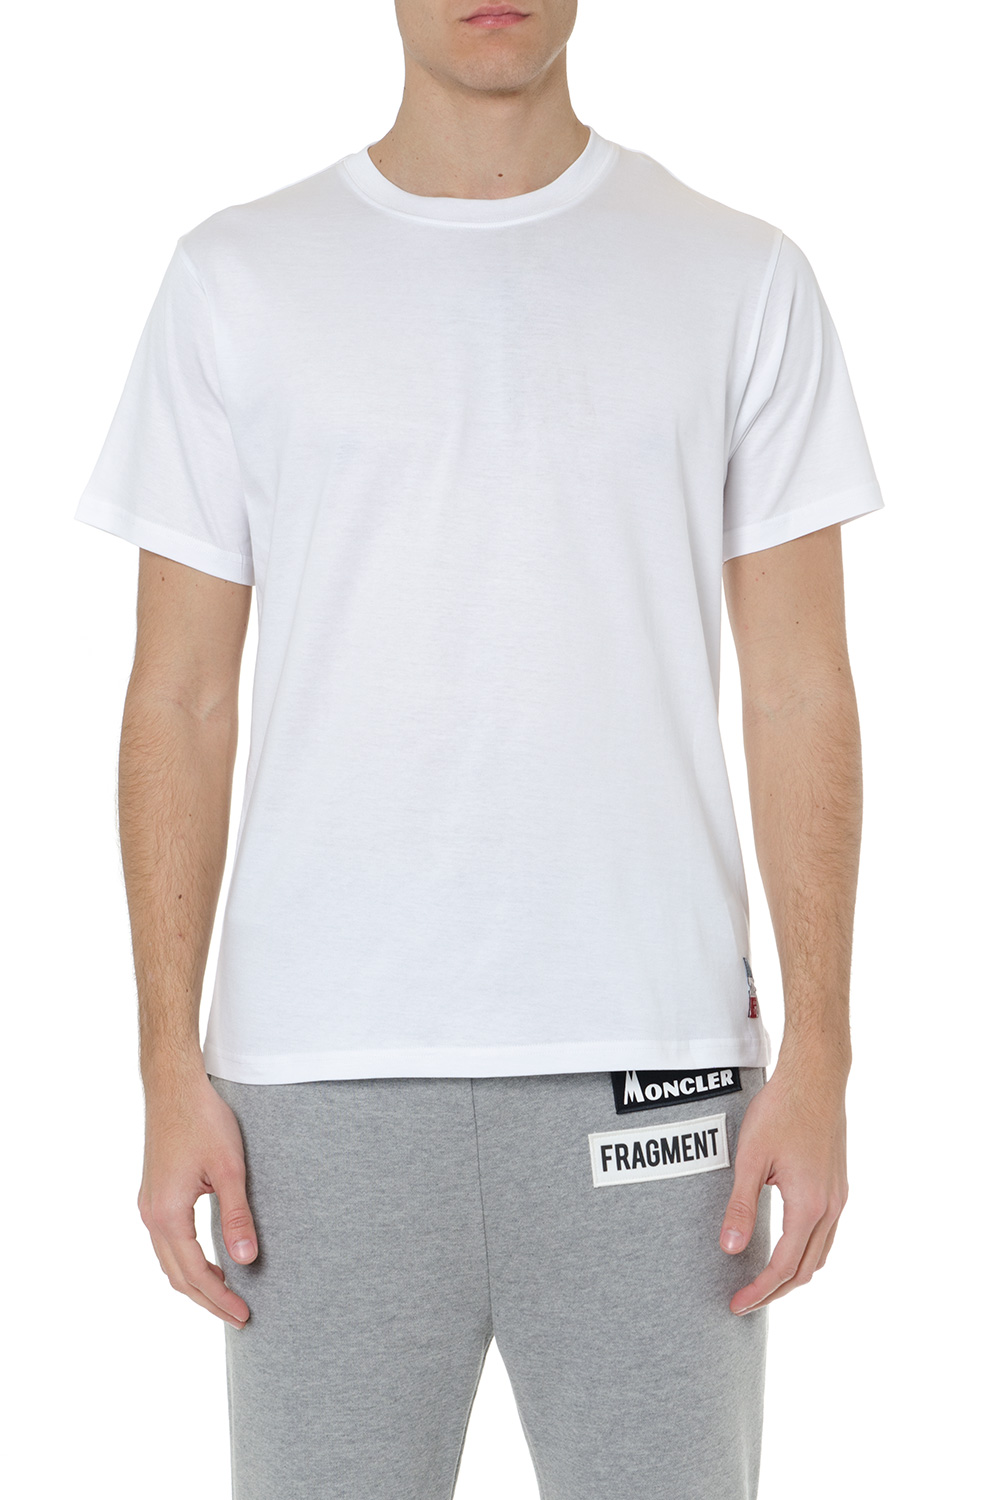 f7a0d6f8 WHITE COTTON T-SHIRT SS 2019 - MONCLER GENIUS - Boutique Galiano